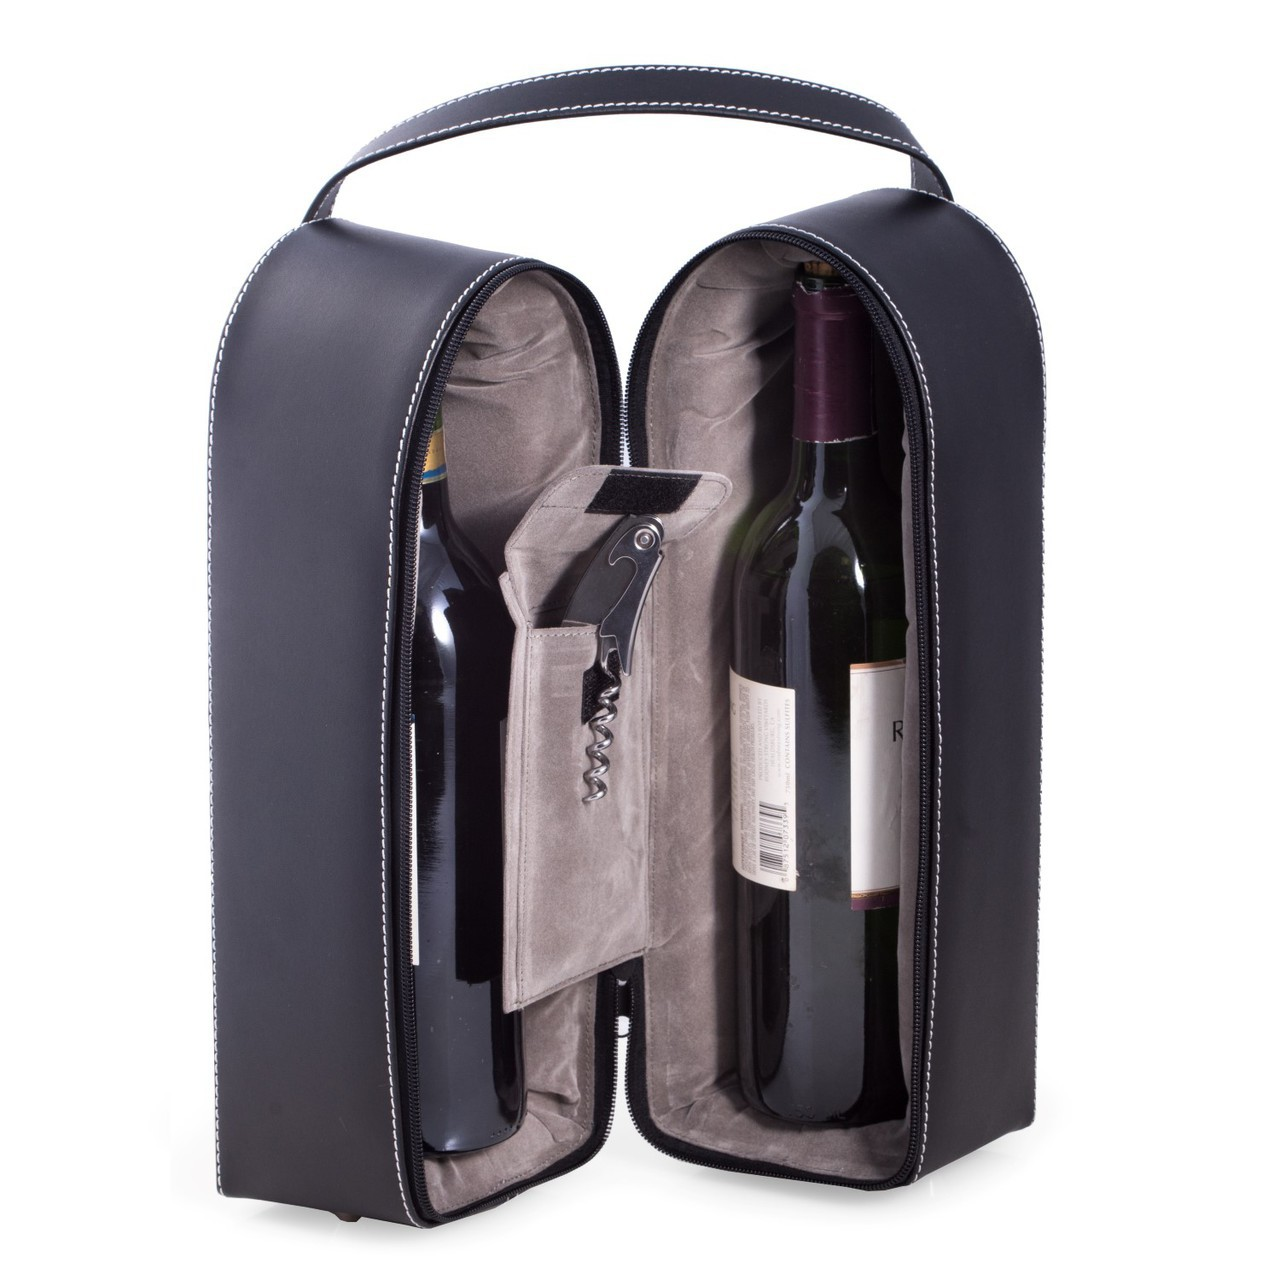 Genuine Leather 2 Bottle Wine Carrier with Corkscrew